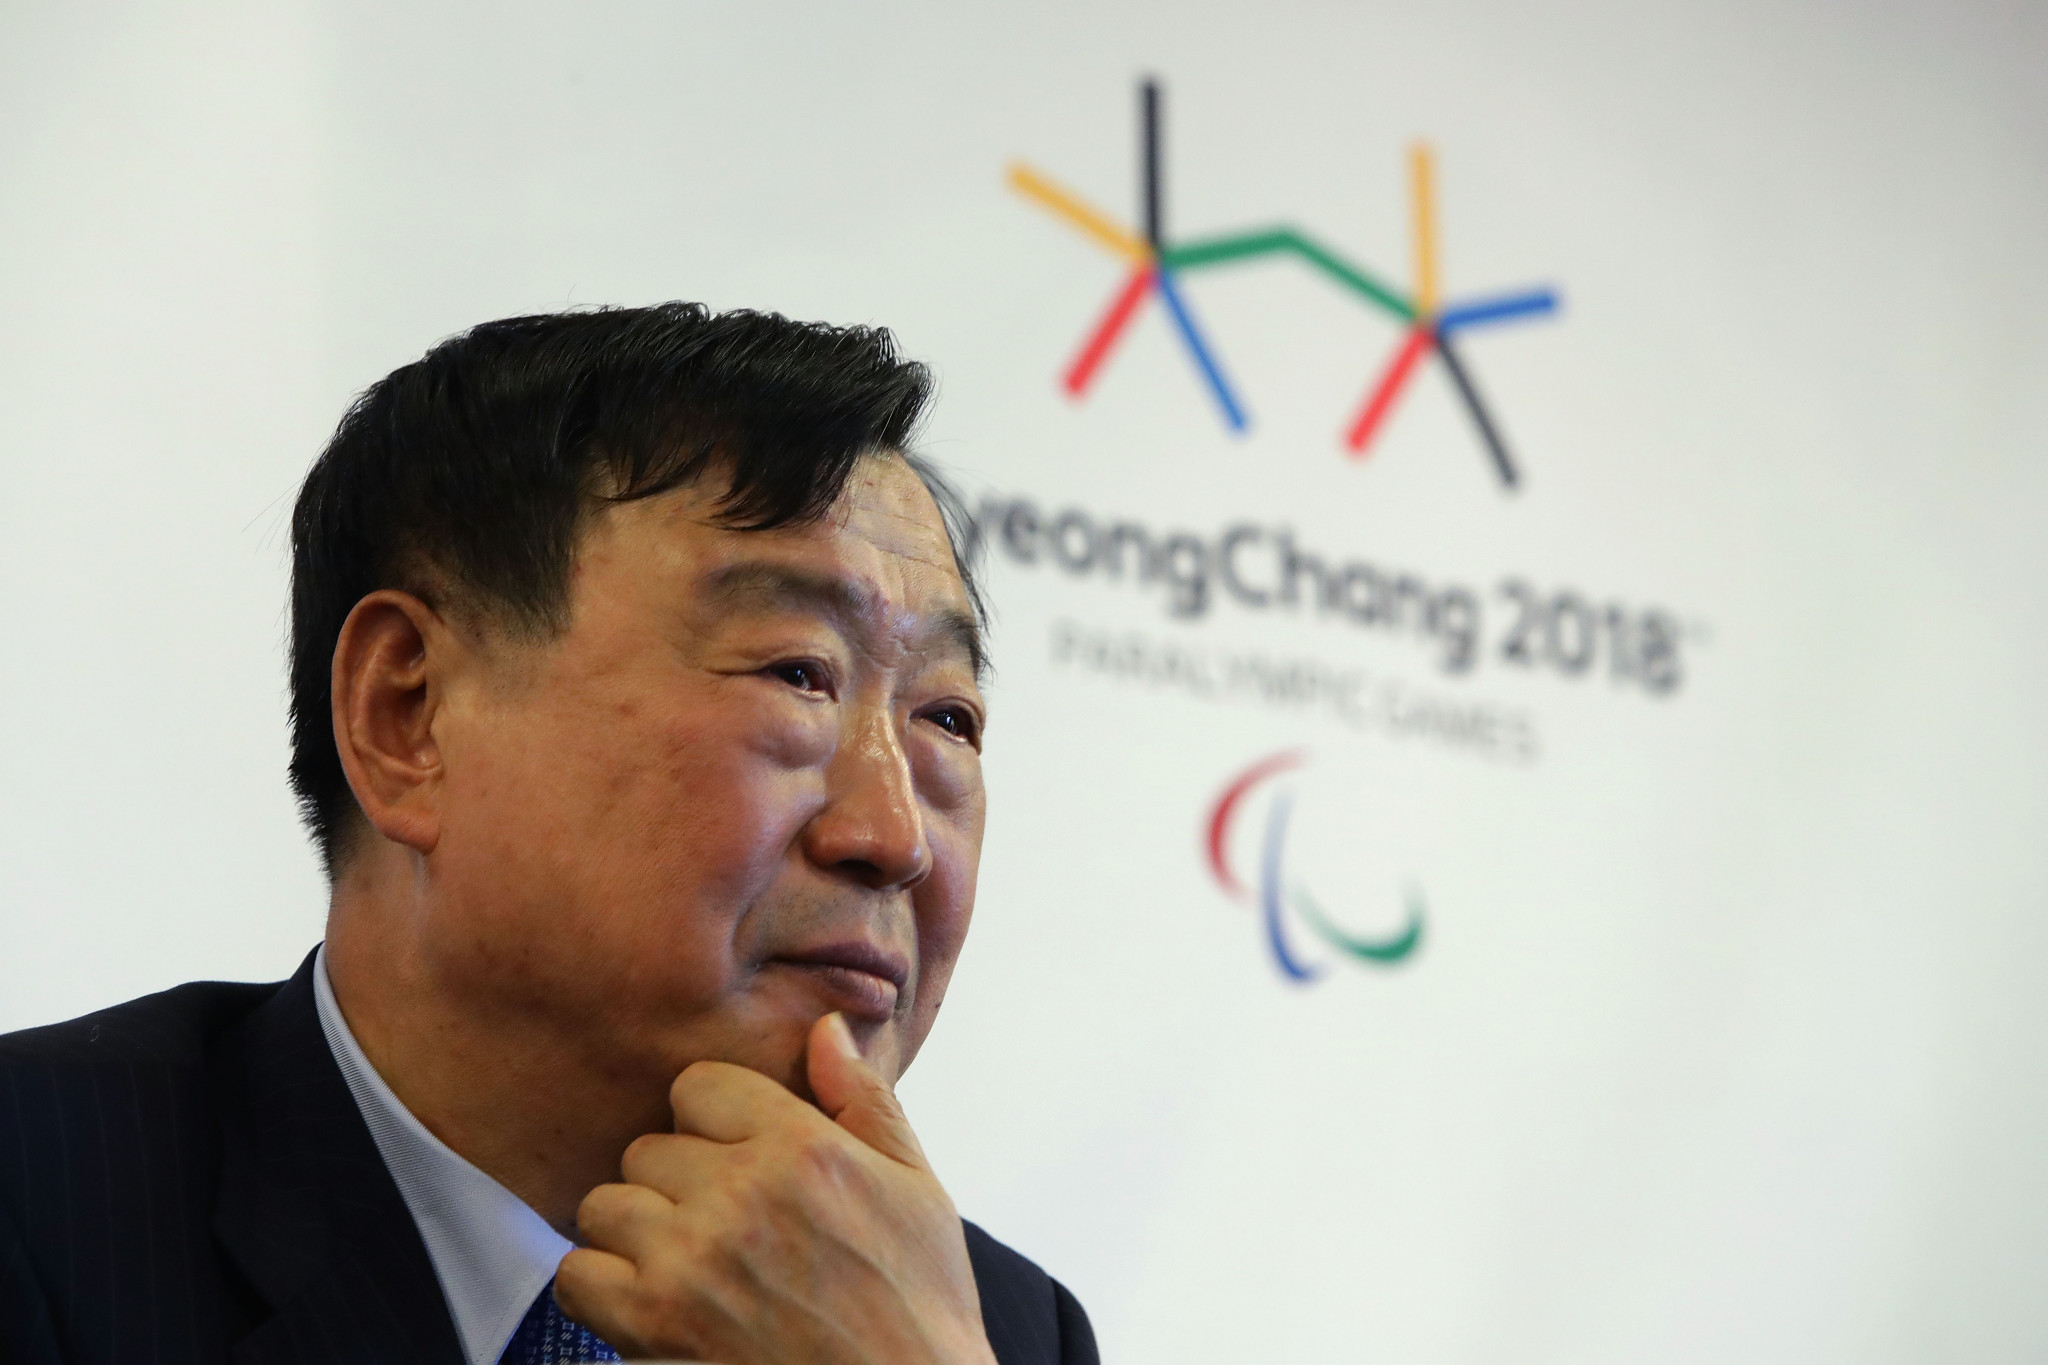 The rate of ticket sales for the Pyeongchang 2018 Winter Olympic and Paralympic Games, whose President is Pyeongchang 2018 President Lee Hee-beom, is extremely slow ©Getty Images